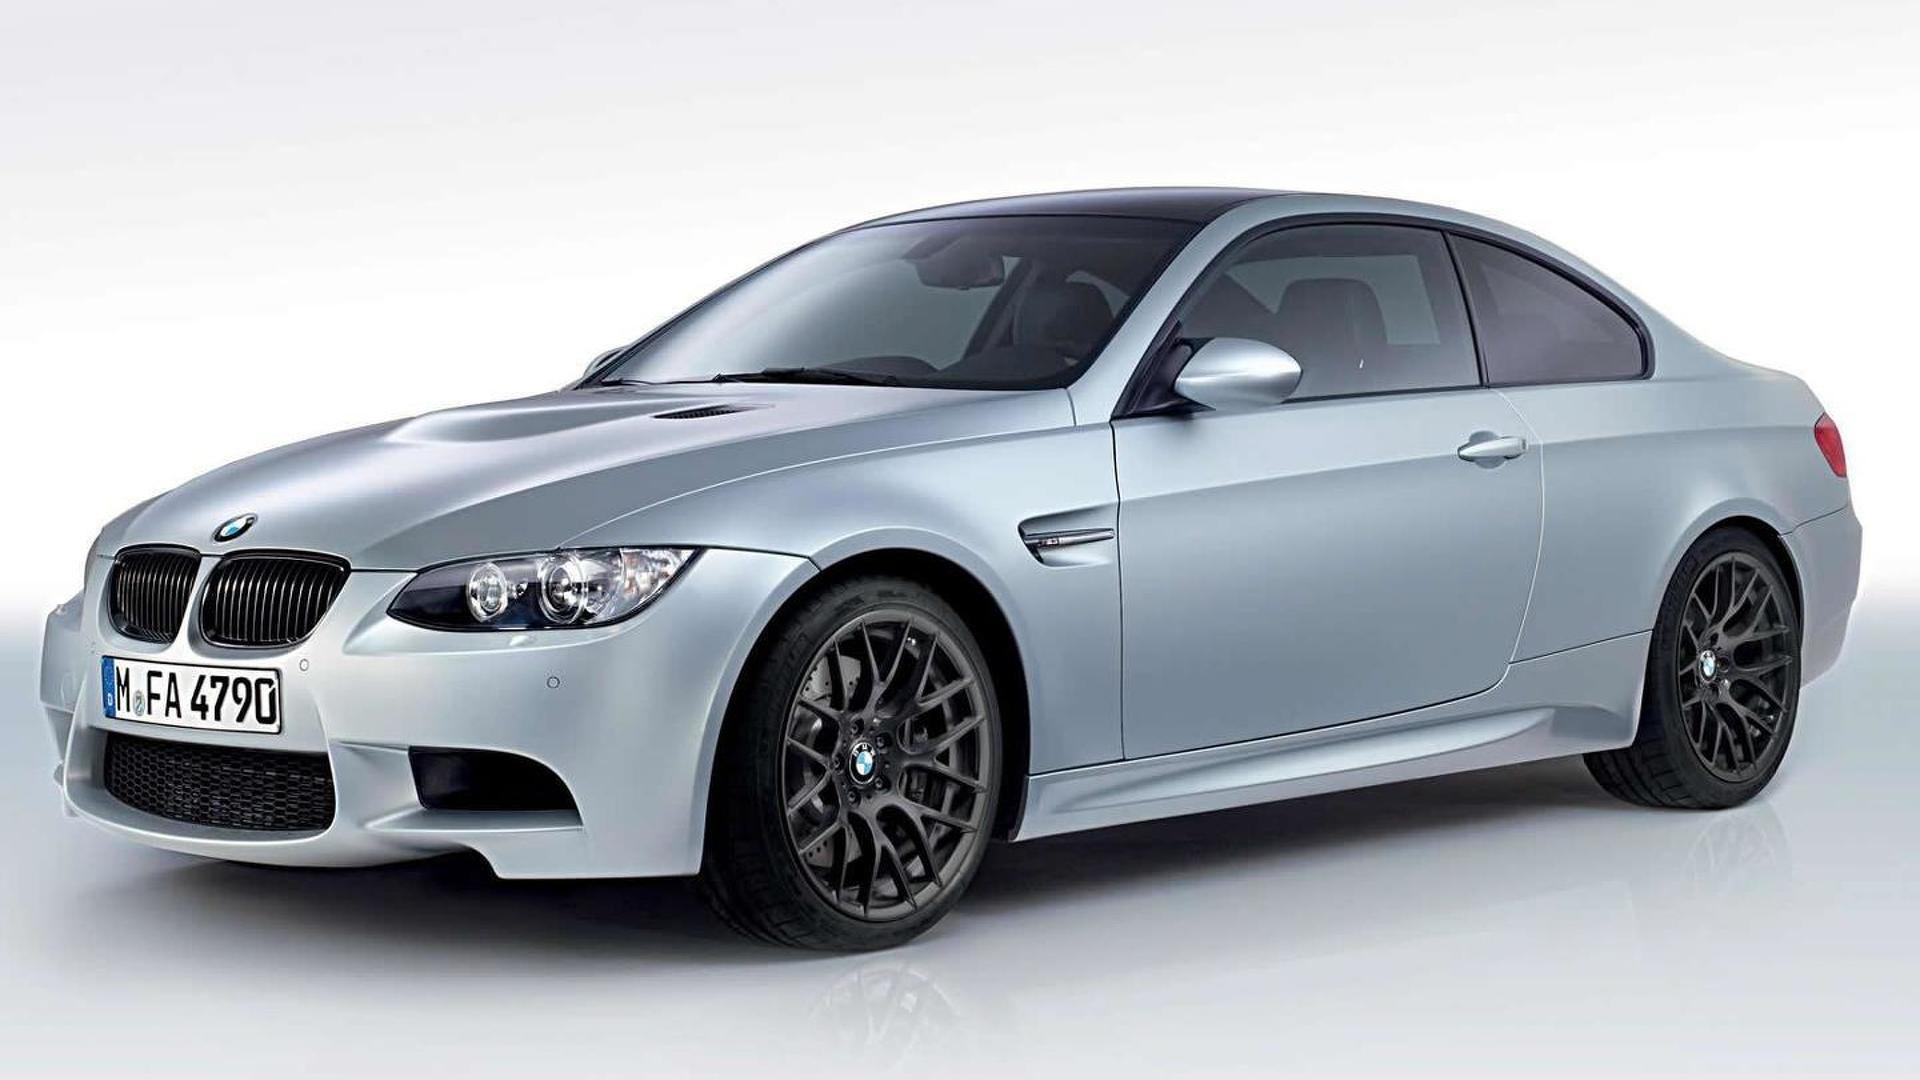 BMW M3 Coupe Frozen Silver limited edition launches in UK